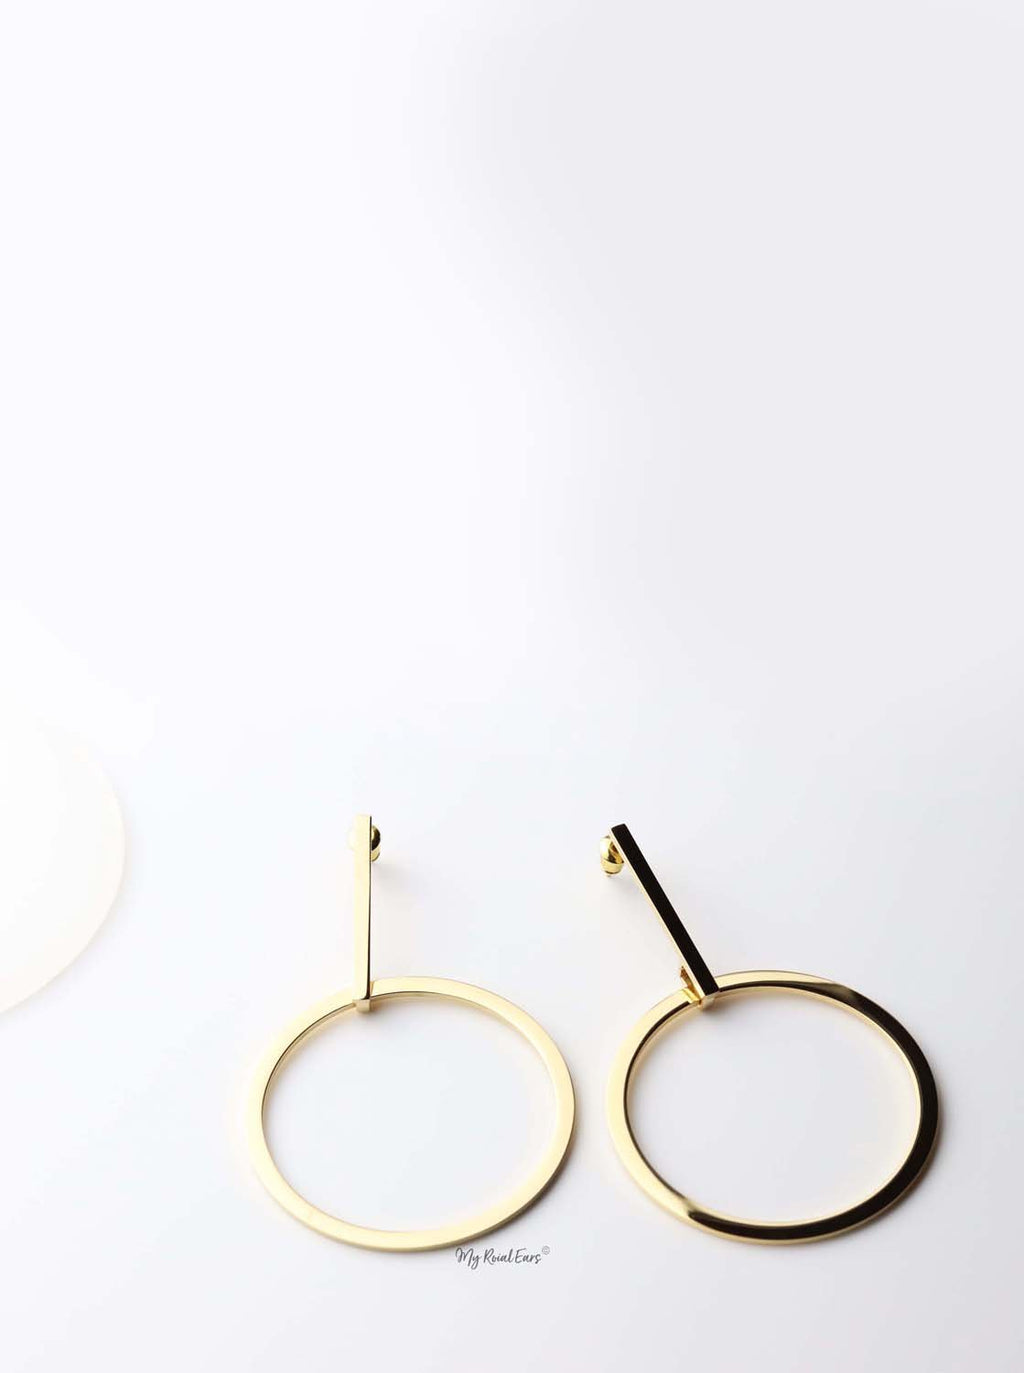 Peitho- gold plated long oval drop earrings - My Roial Ears LTD